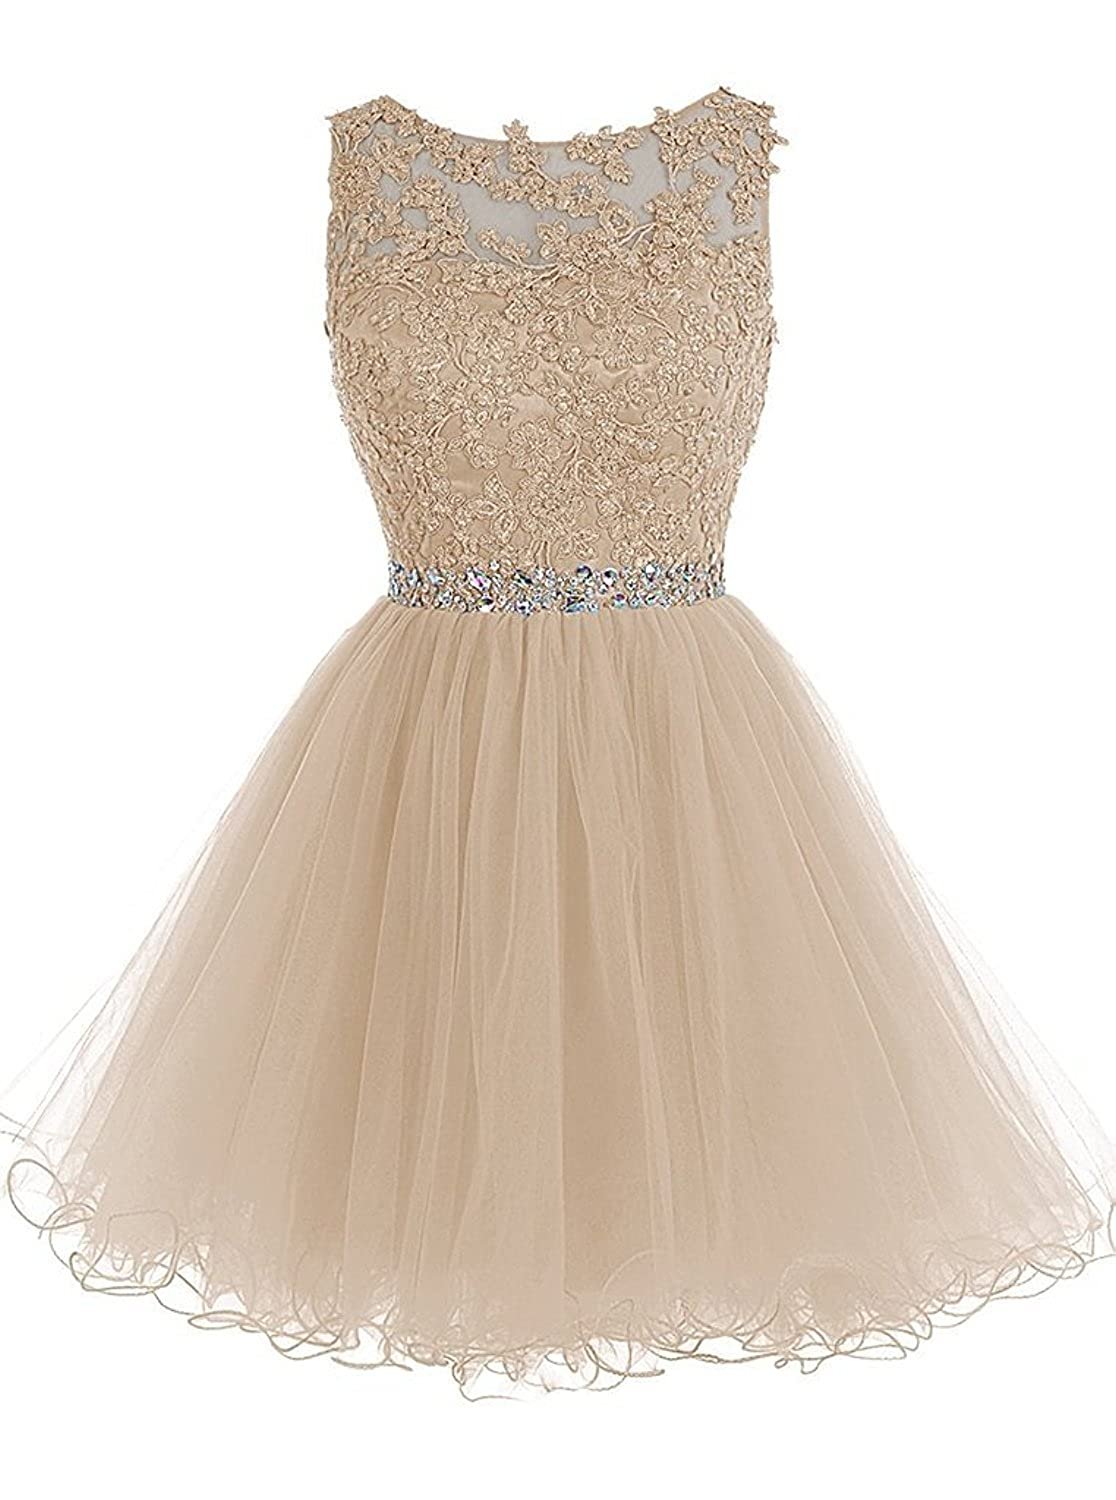 Champagne Caissen Women's Short Ball Gown Sheer Crew Neck Beading Appliques Tulle Prom Dress Open Back with Zipper Mini Party Dress